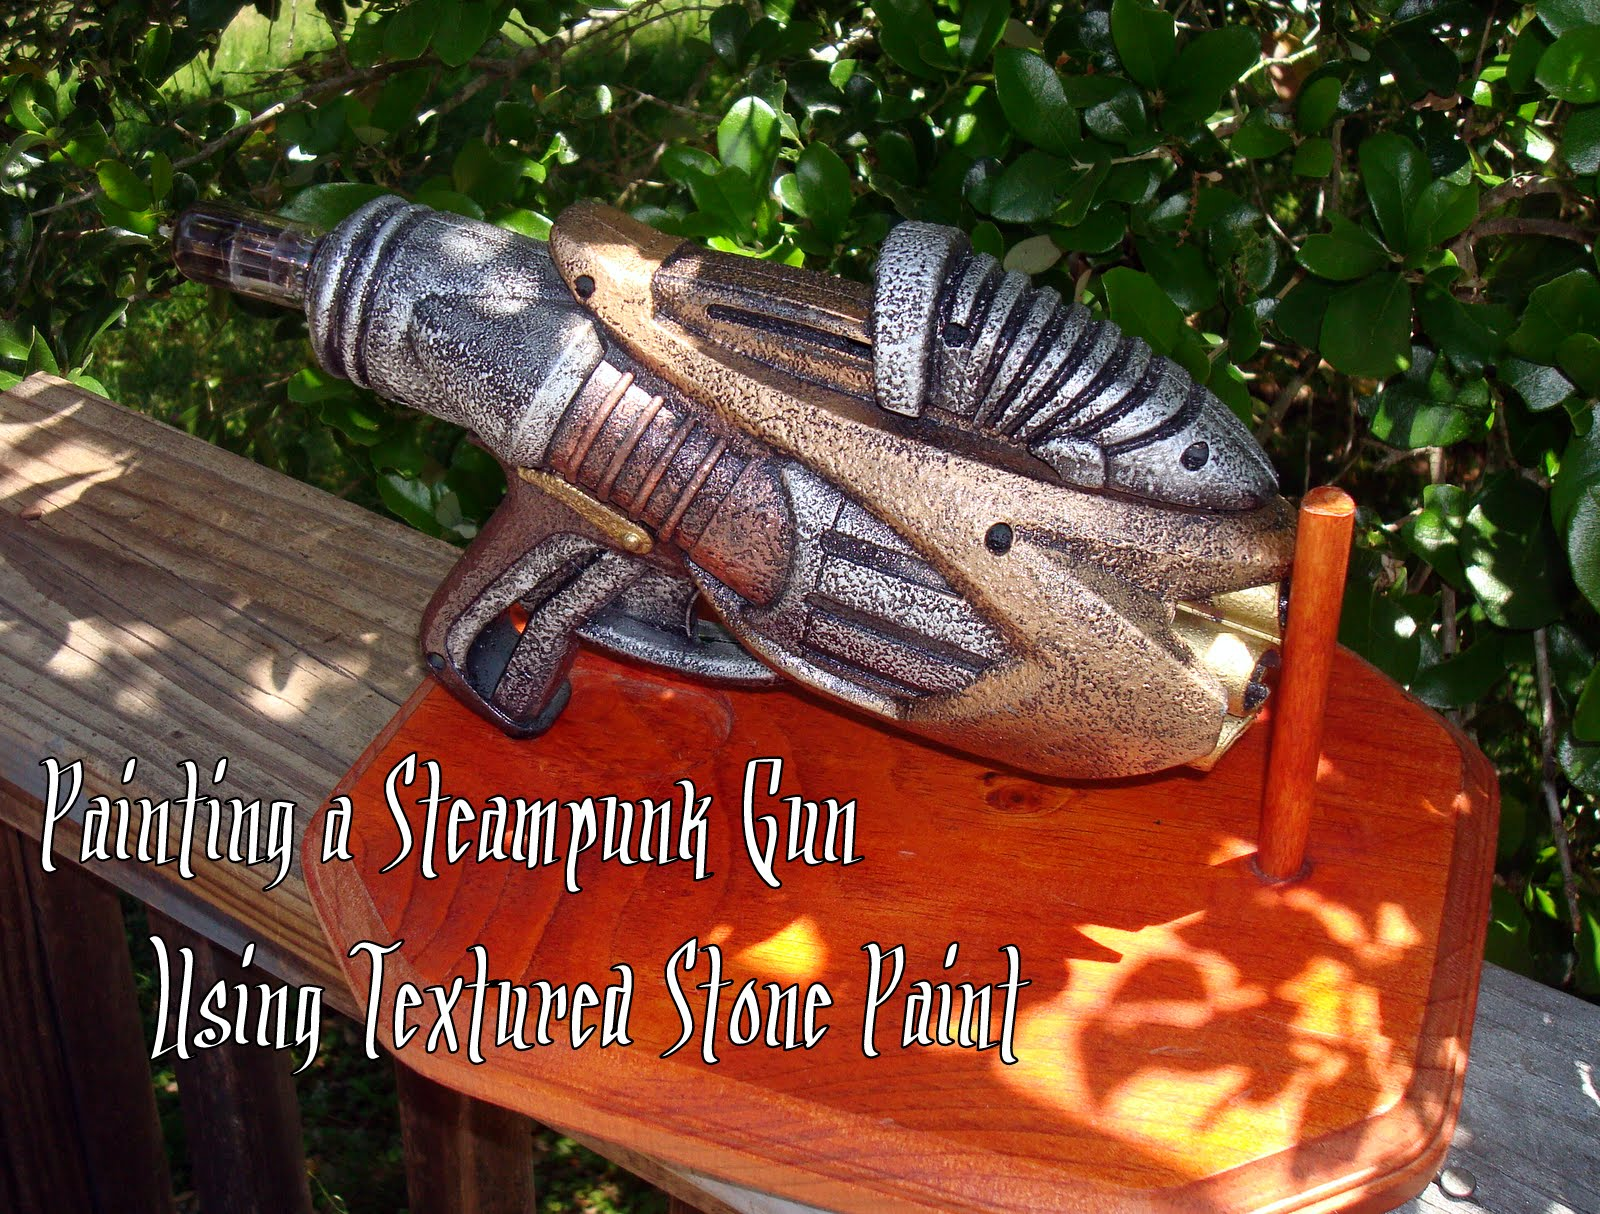 Steam Ingenious Tutorial Painting a Steampunk Gun with Textured Paint